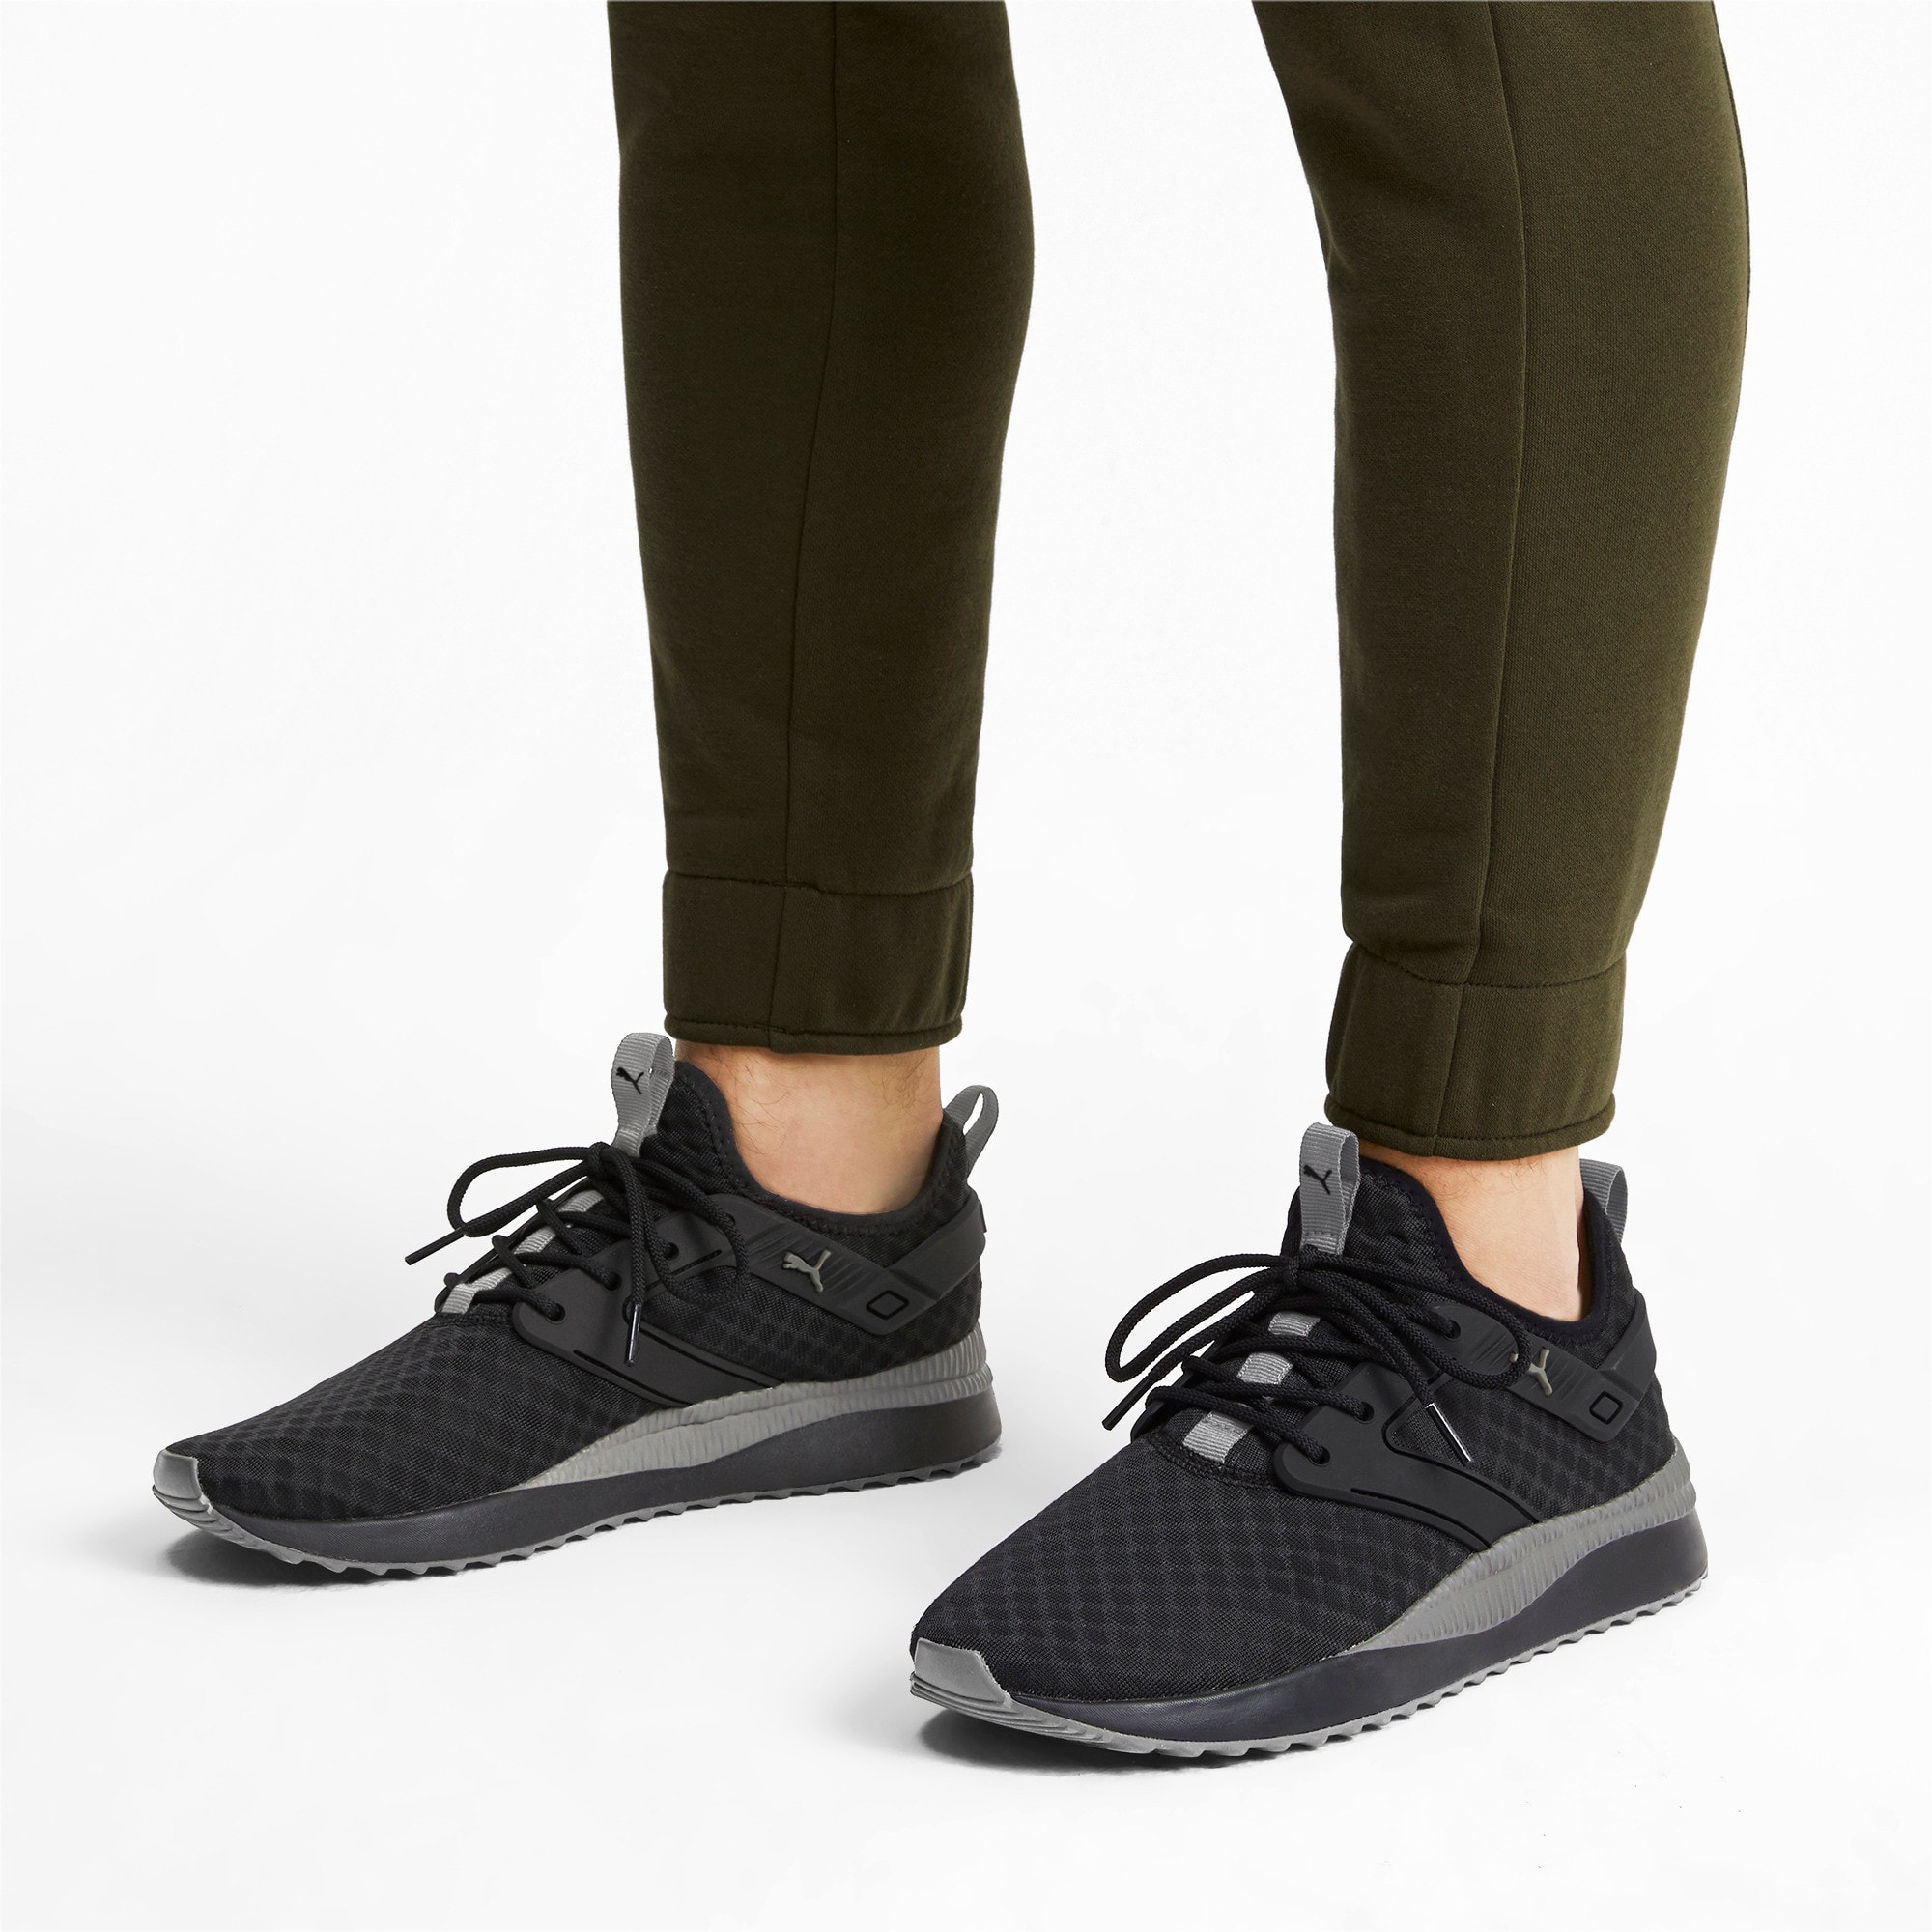 Thumbnail 2 of Pacer Next Excel Core Sneakers, Puma Black-Charcoal Gray, medium